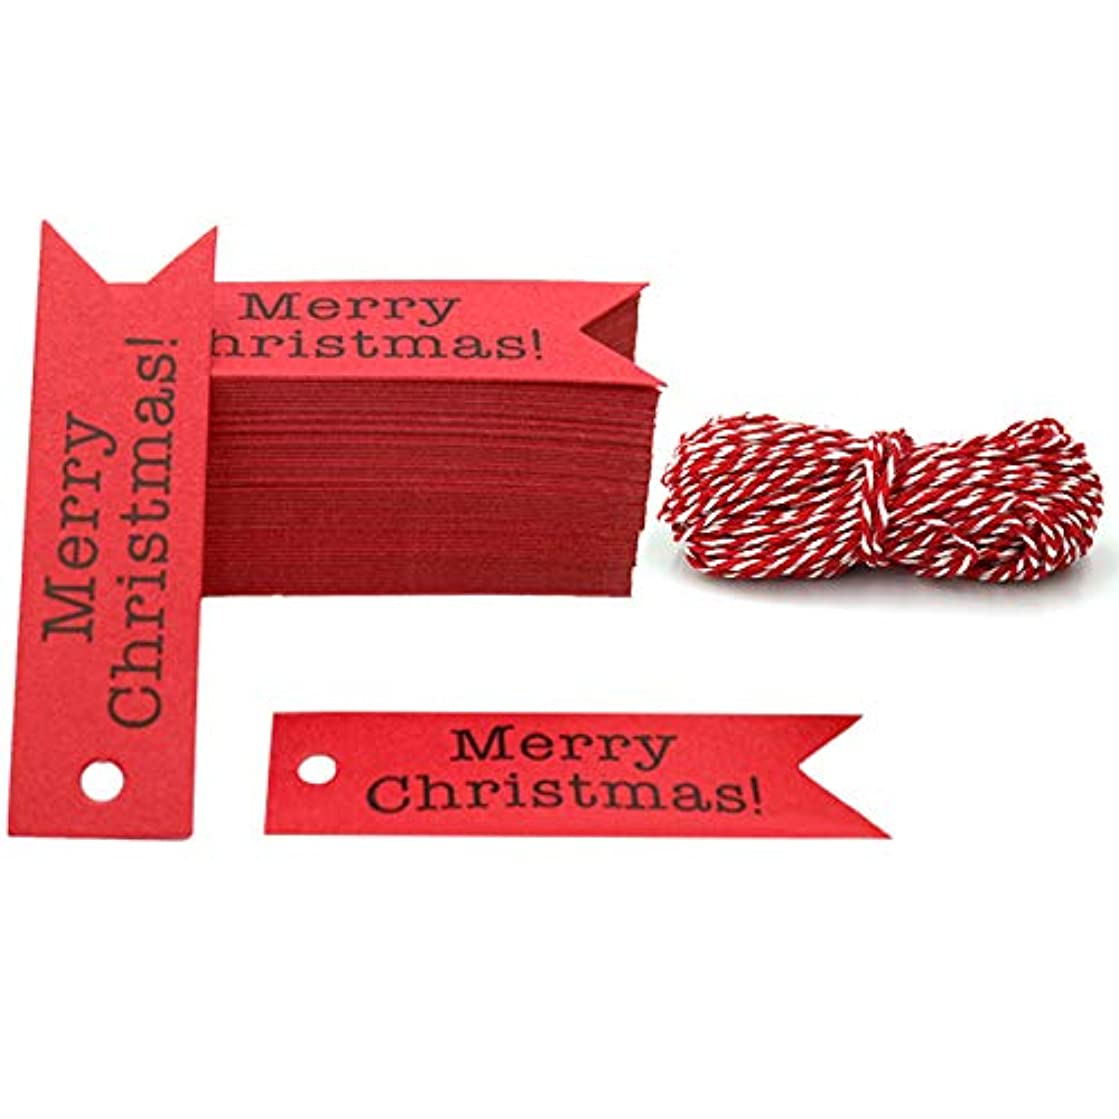 Christmas Gift Tags,100 Pcs Red Paper Gift Tags with Red and White String for Gift Wrapping